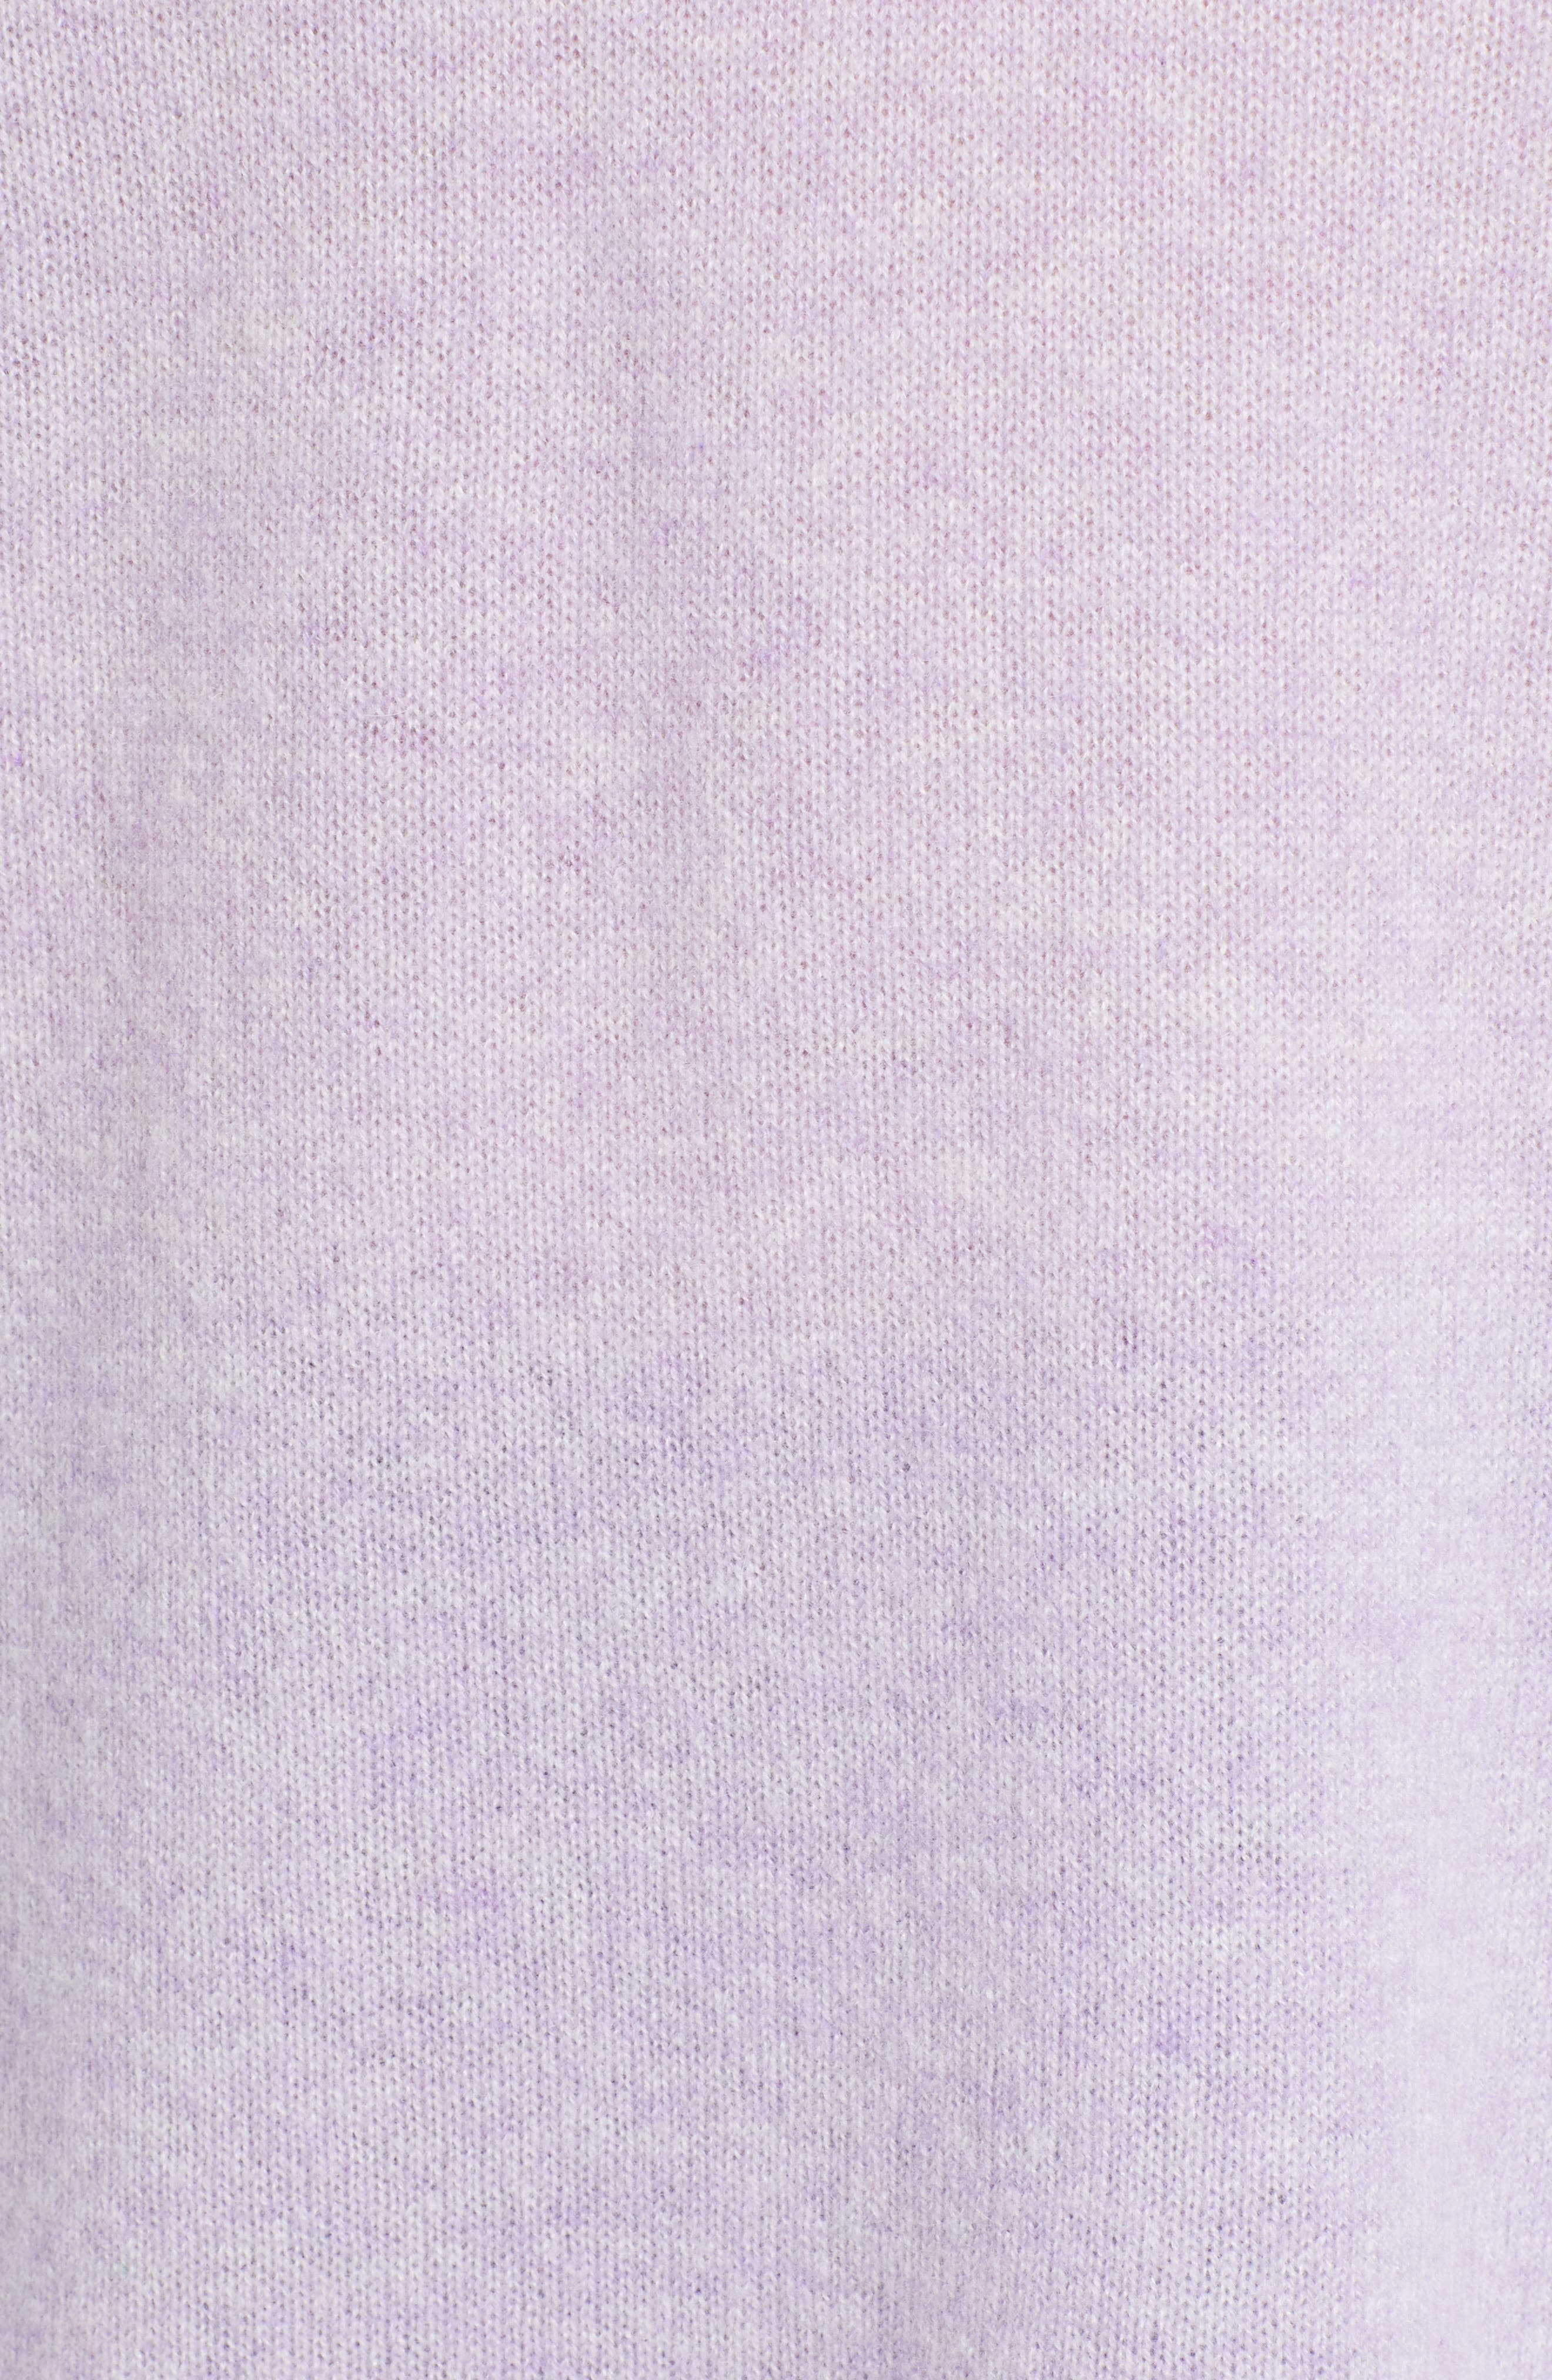 Relaxed V-Neck Cashmere Sweater,                             Alternate thumbnail 5, color,                             LAVENDER SWEET